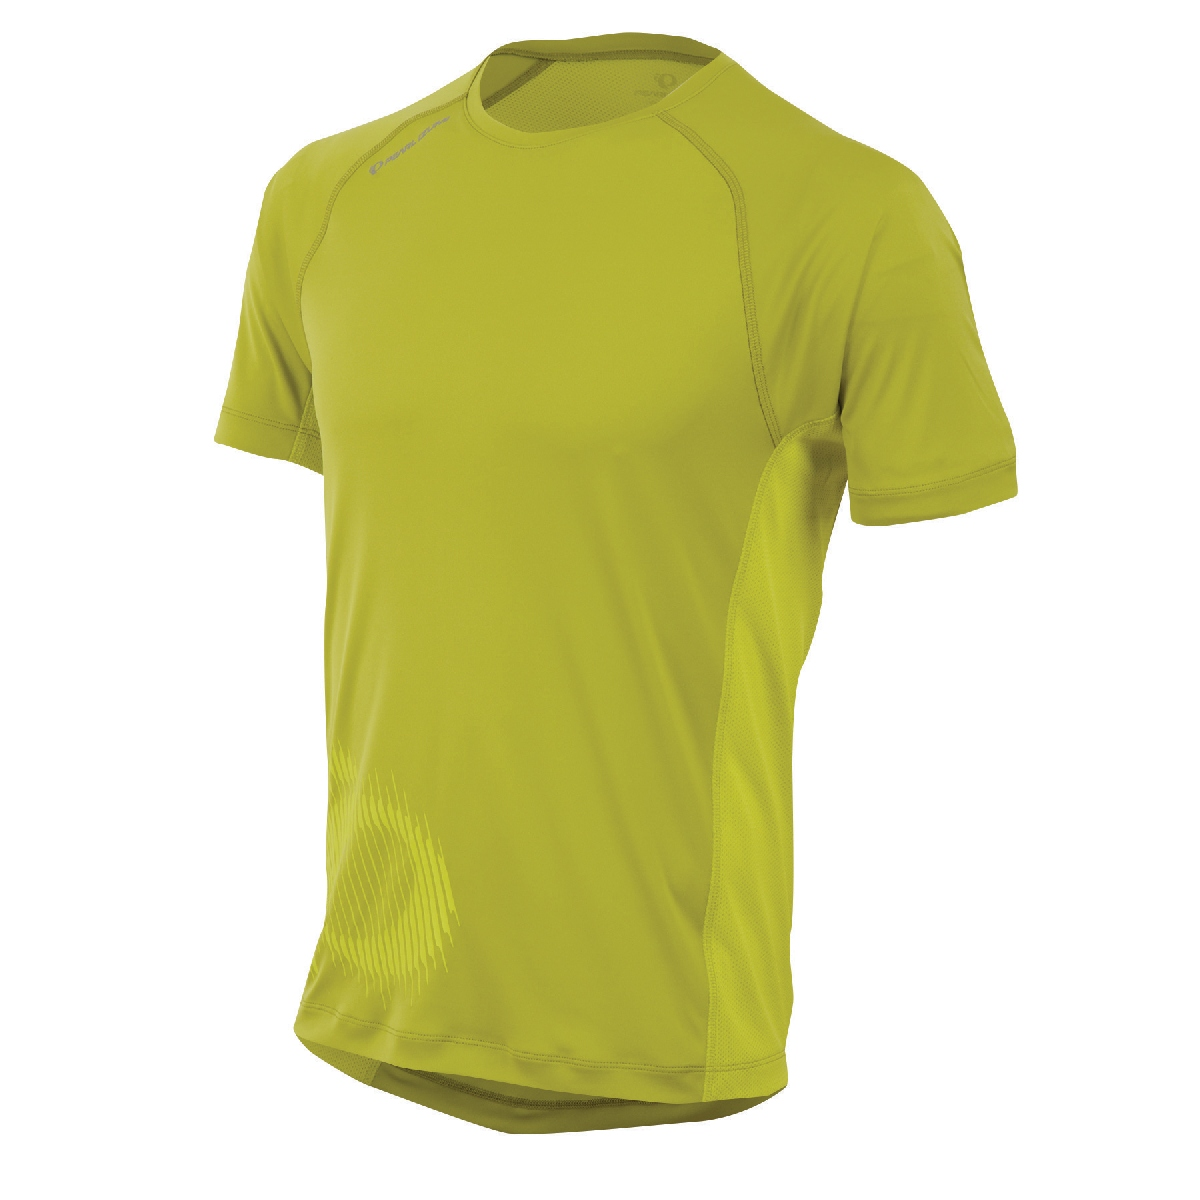 Pearl Izumi Flash Graphic Short Sleeve Running Top Men's Size M Citron SulphurSprings U.S.A. & Canada